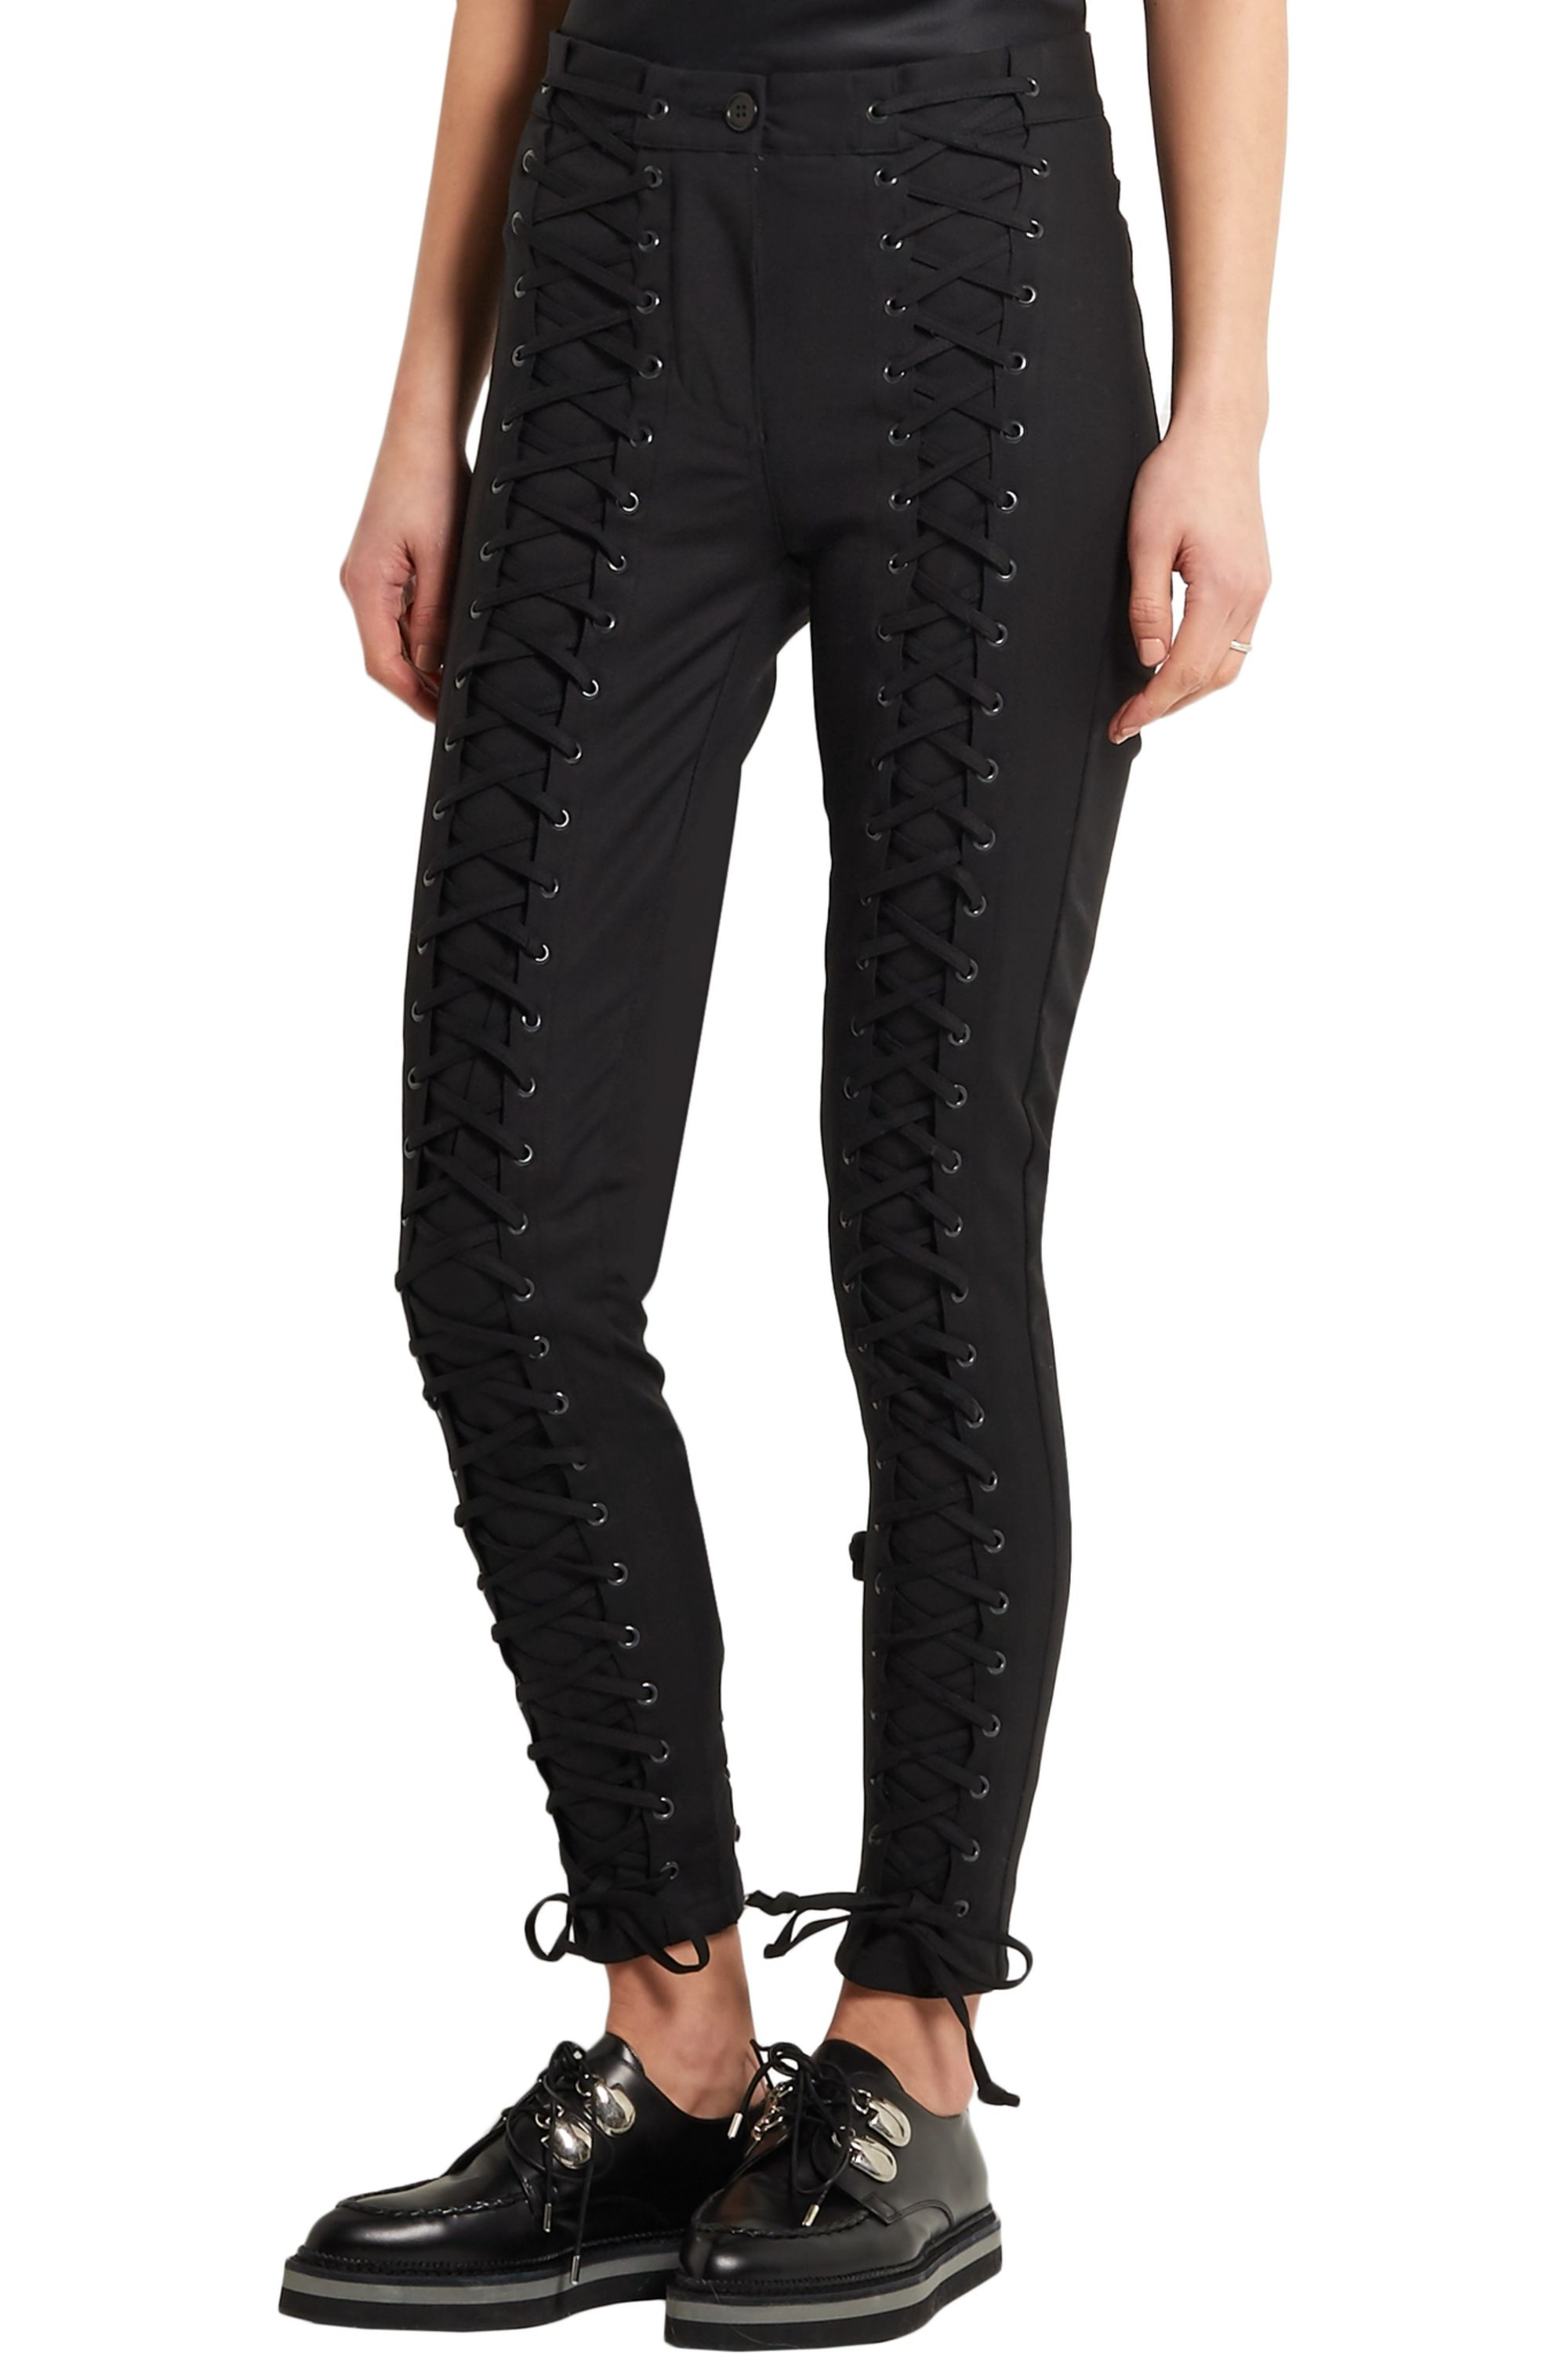 TITLE A Lace-up stretch-cotton skinny pants